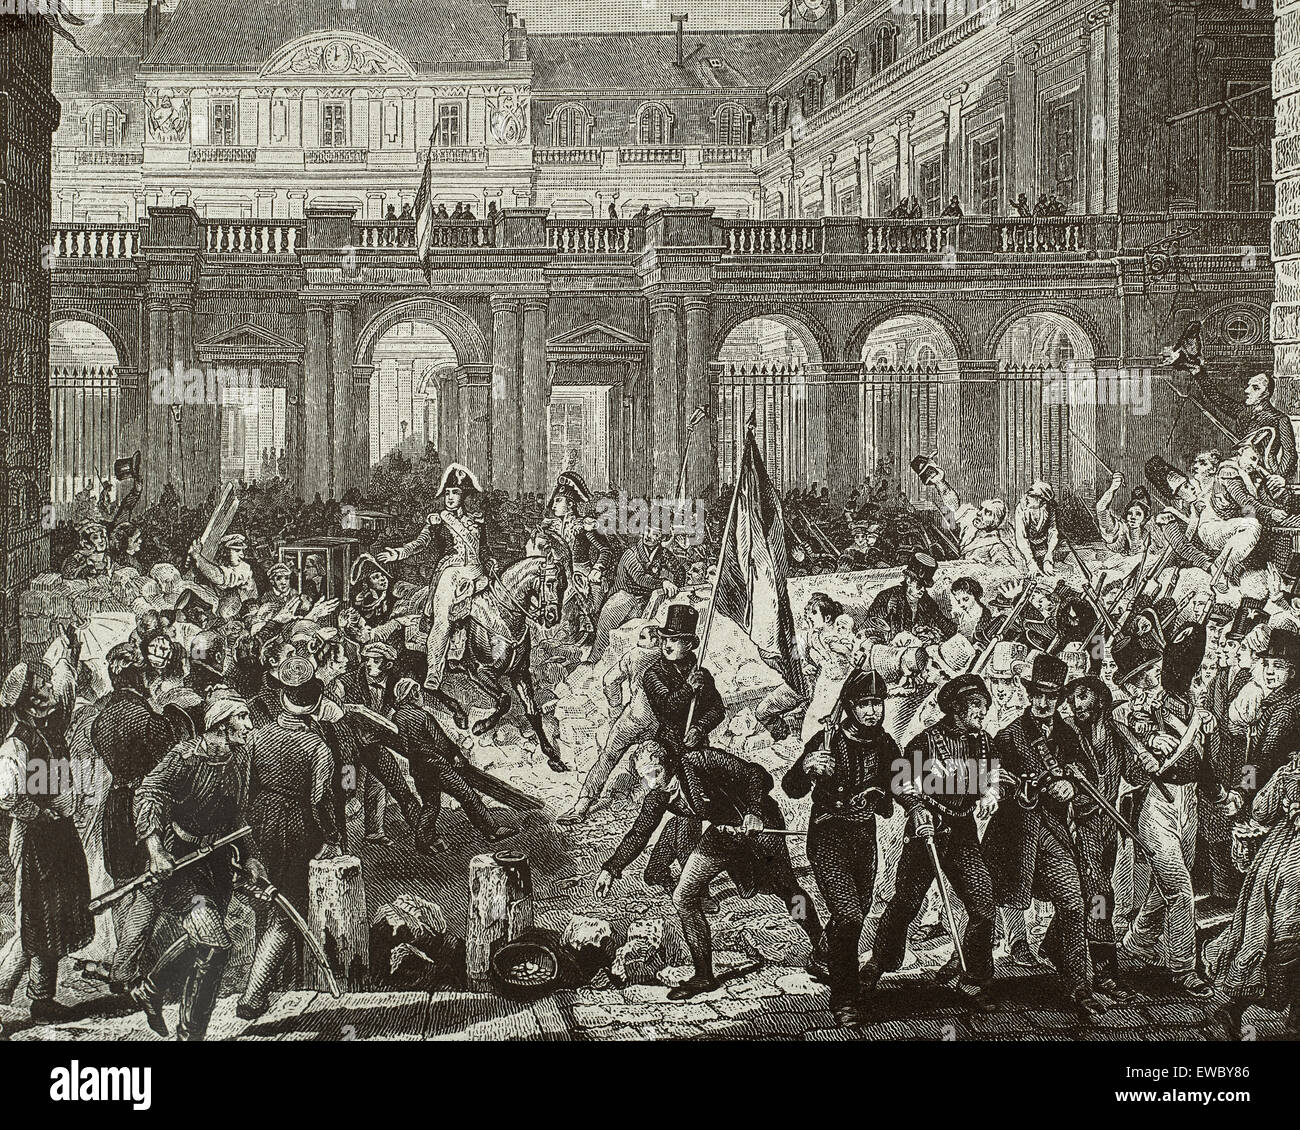 France. Paris. July Revolution.1830. Louis-Philippe,  Duke of Orleans going from the Royal Palace to the town hall, - Stock Image